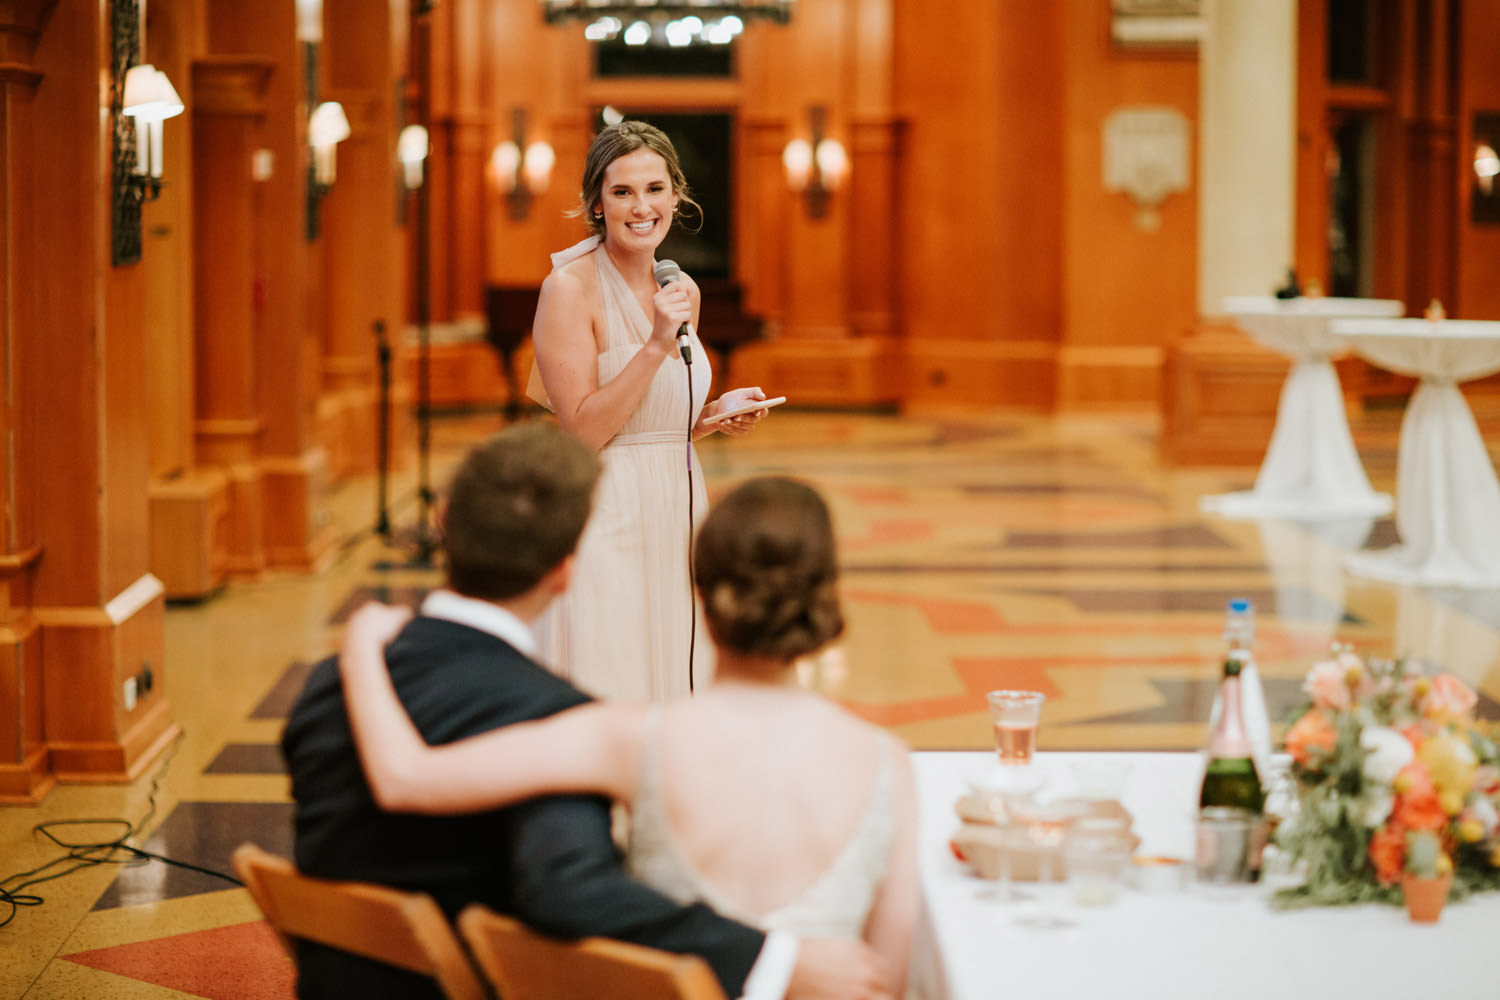 Maid of honor giving a speech during the wedding at Saint Ignatius College